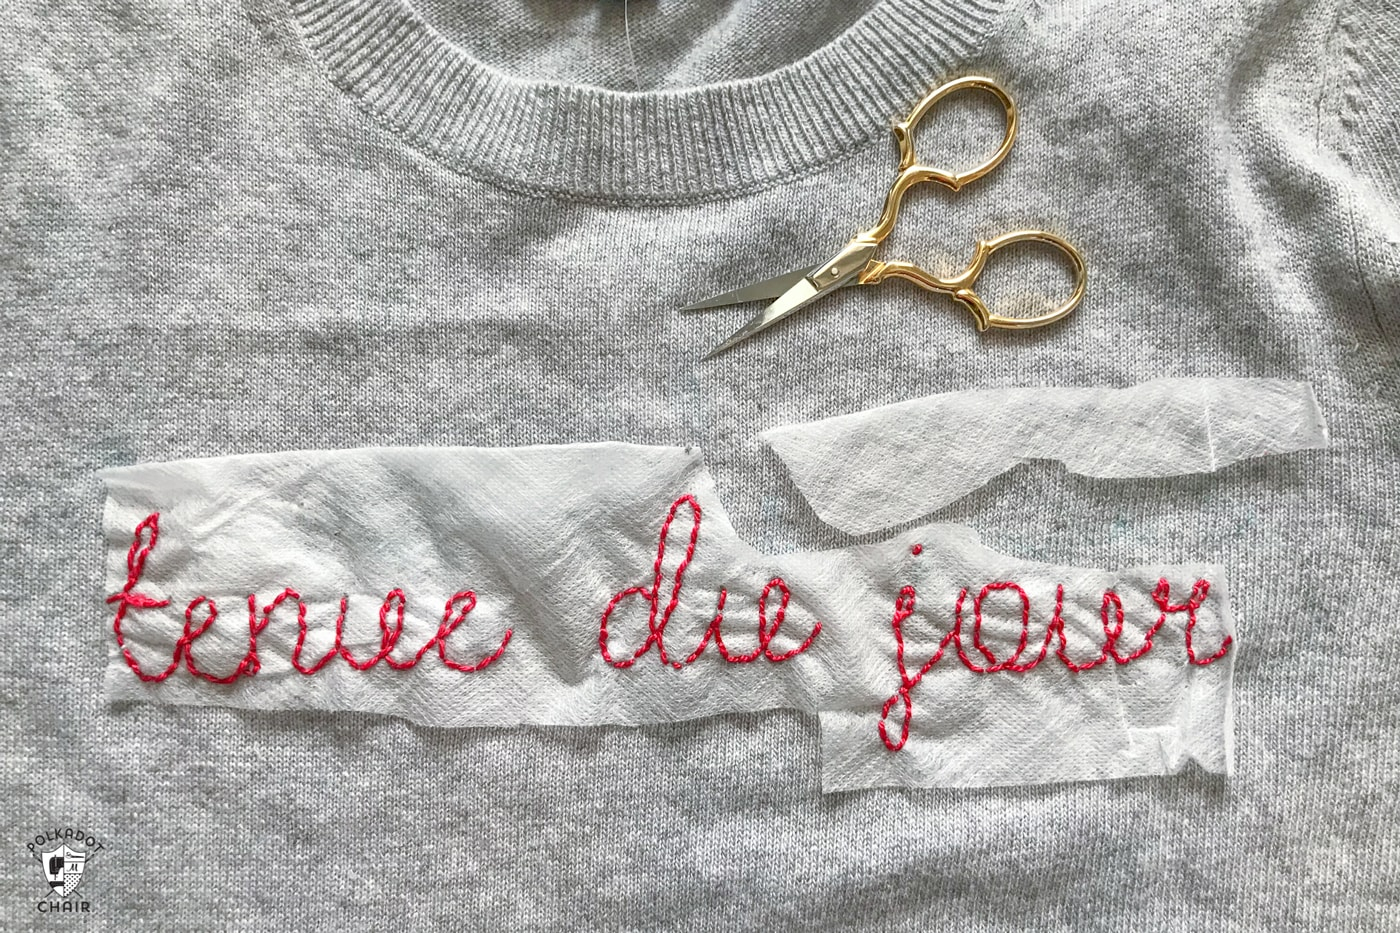 How To Make An Embroidery Pattern Diy Embroidered Sweater Tutorial The Polka Dot Chair